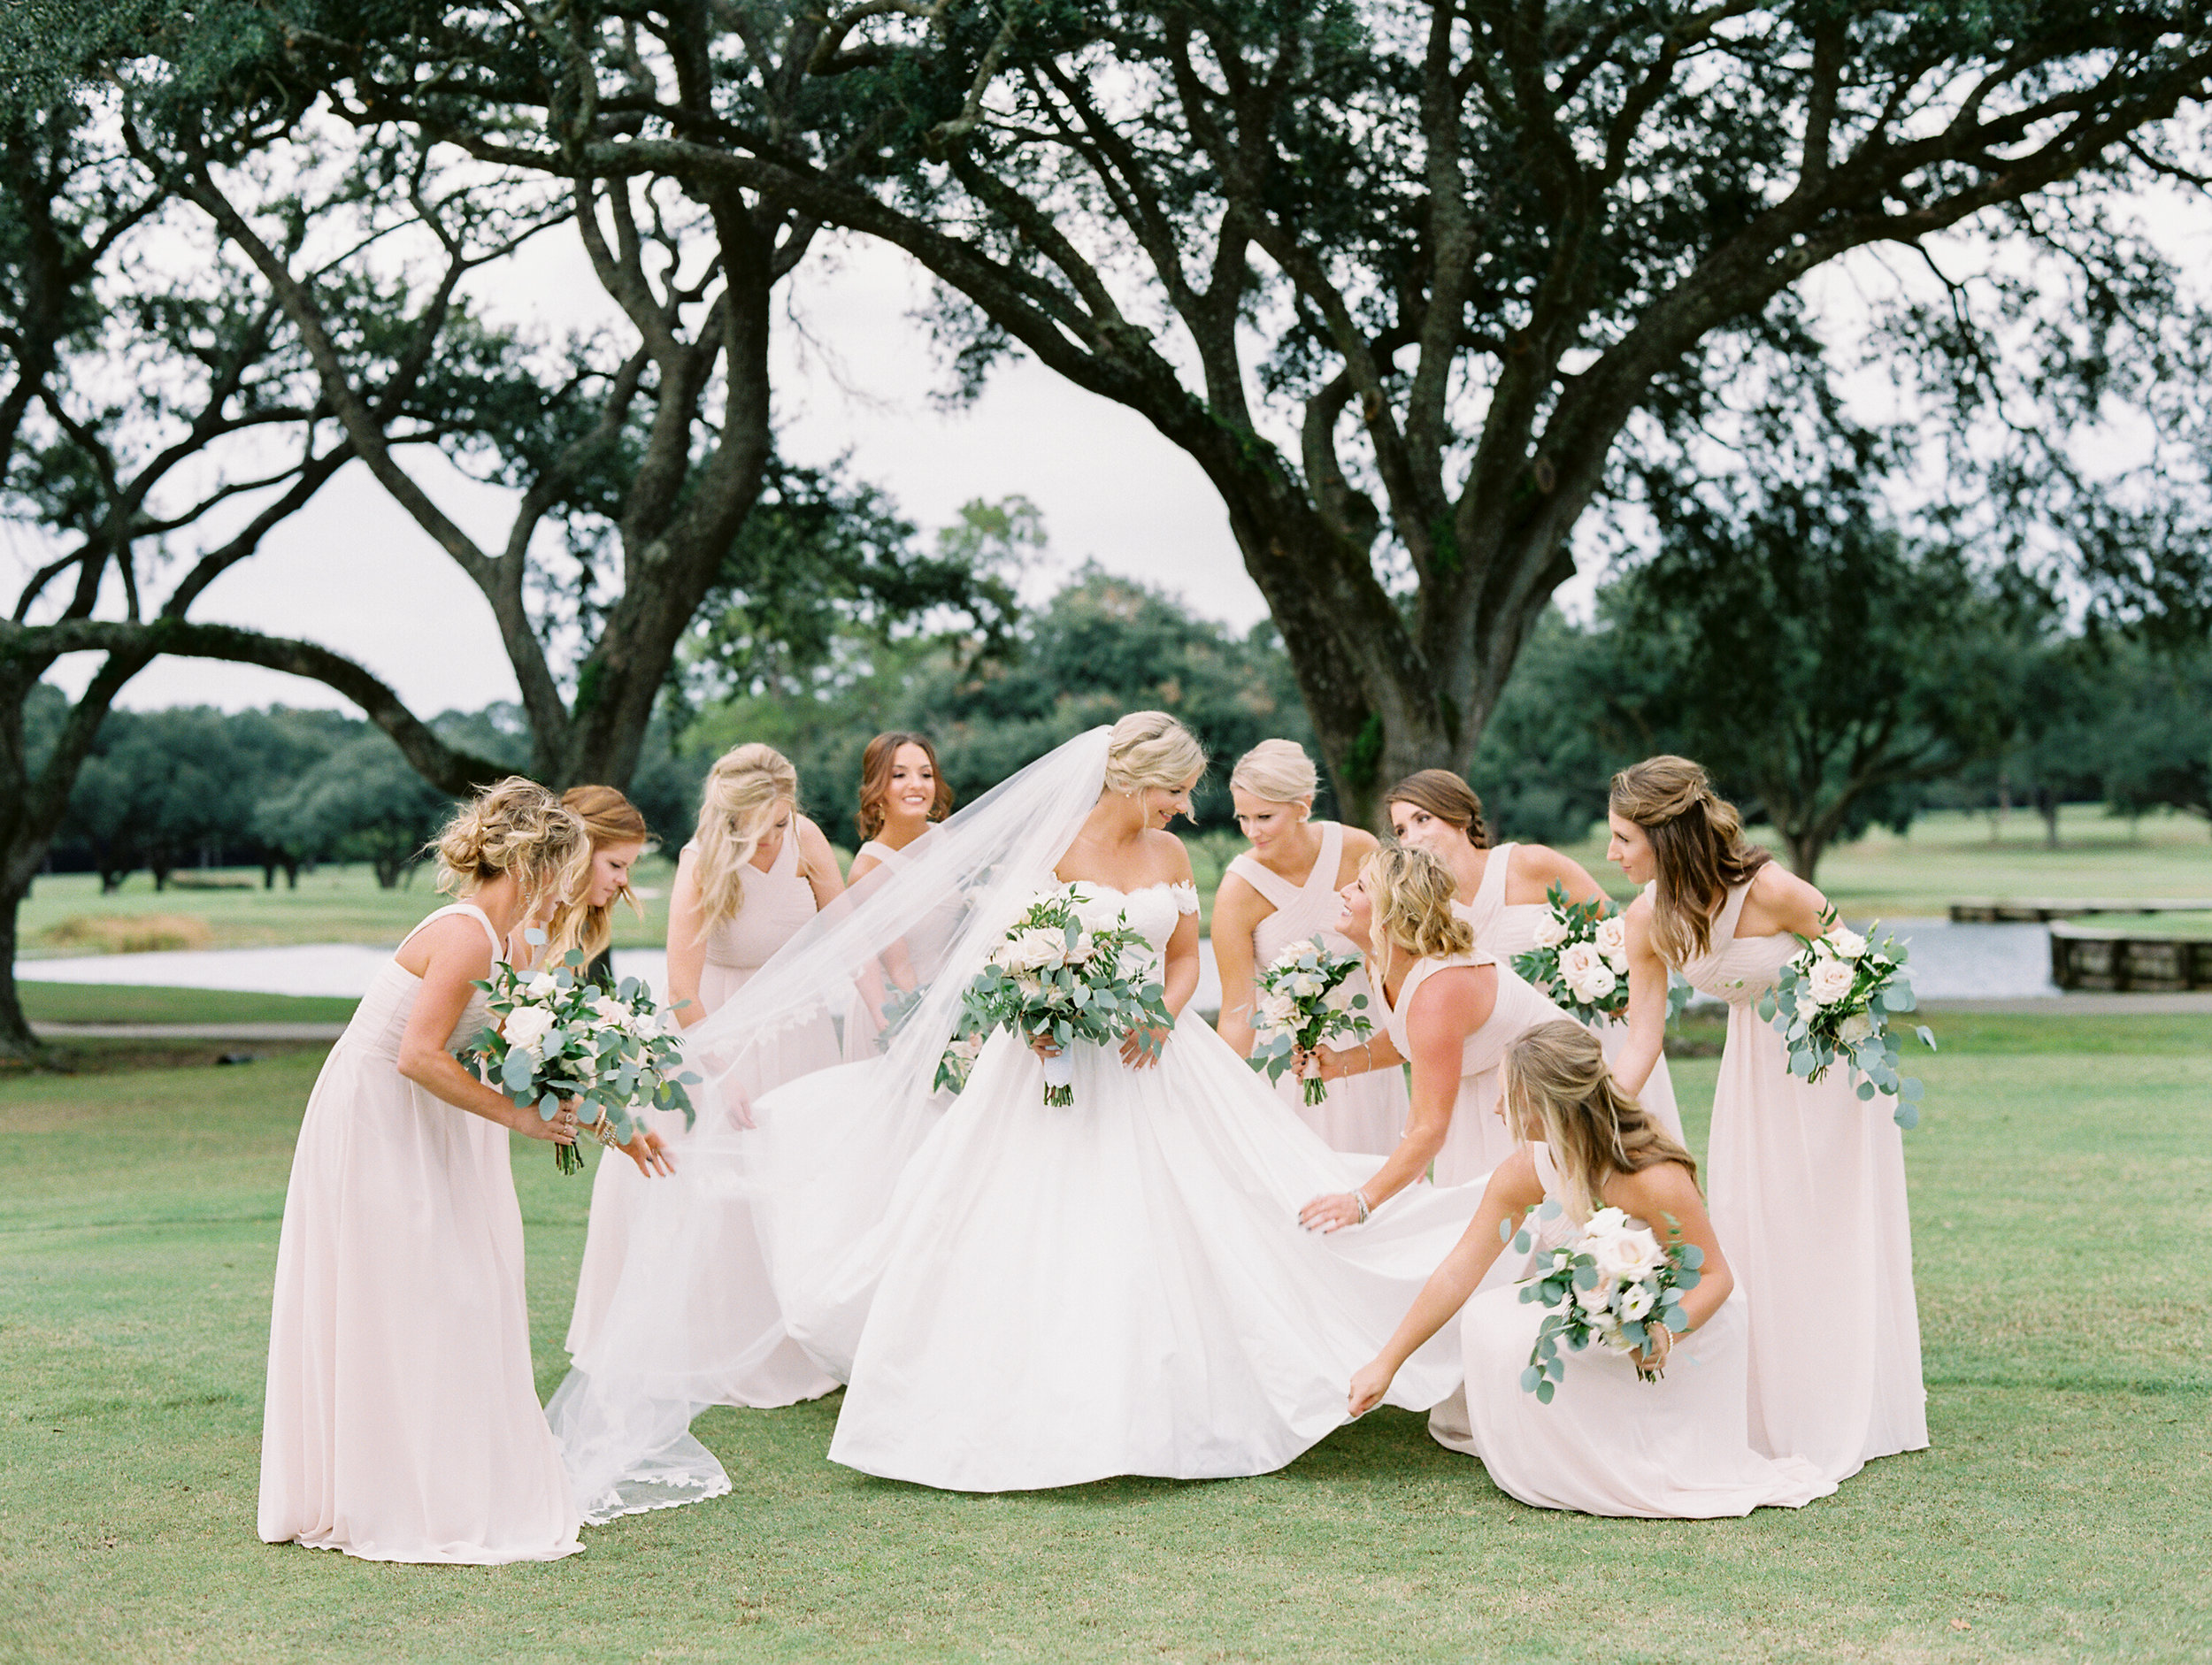 Southern Fete, Southern Wedding, Bride and Bridesmaids, Sarah Beth Photography, Flowers by Rodney